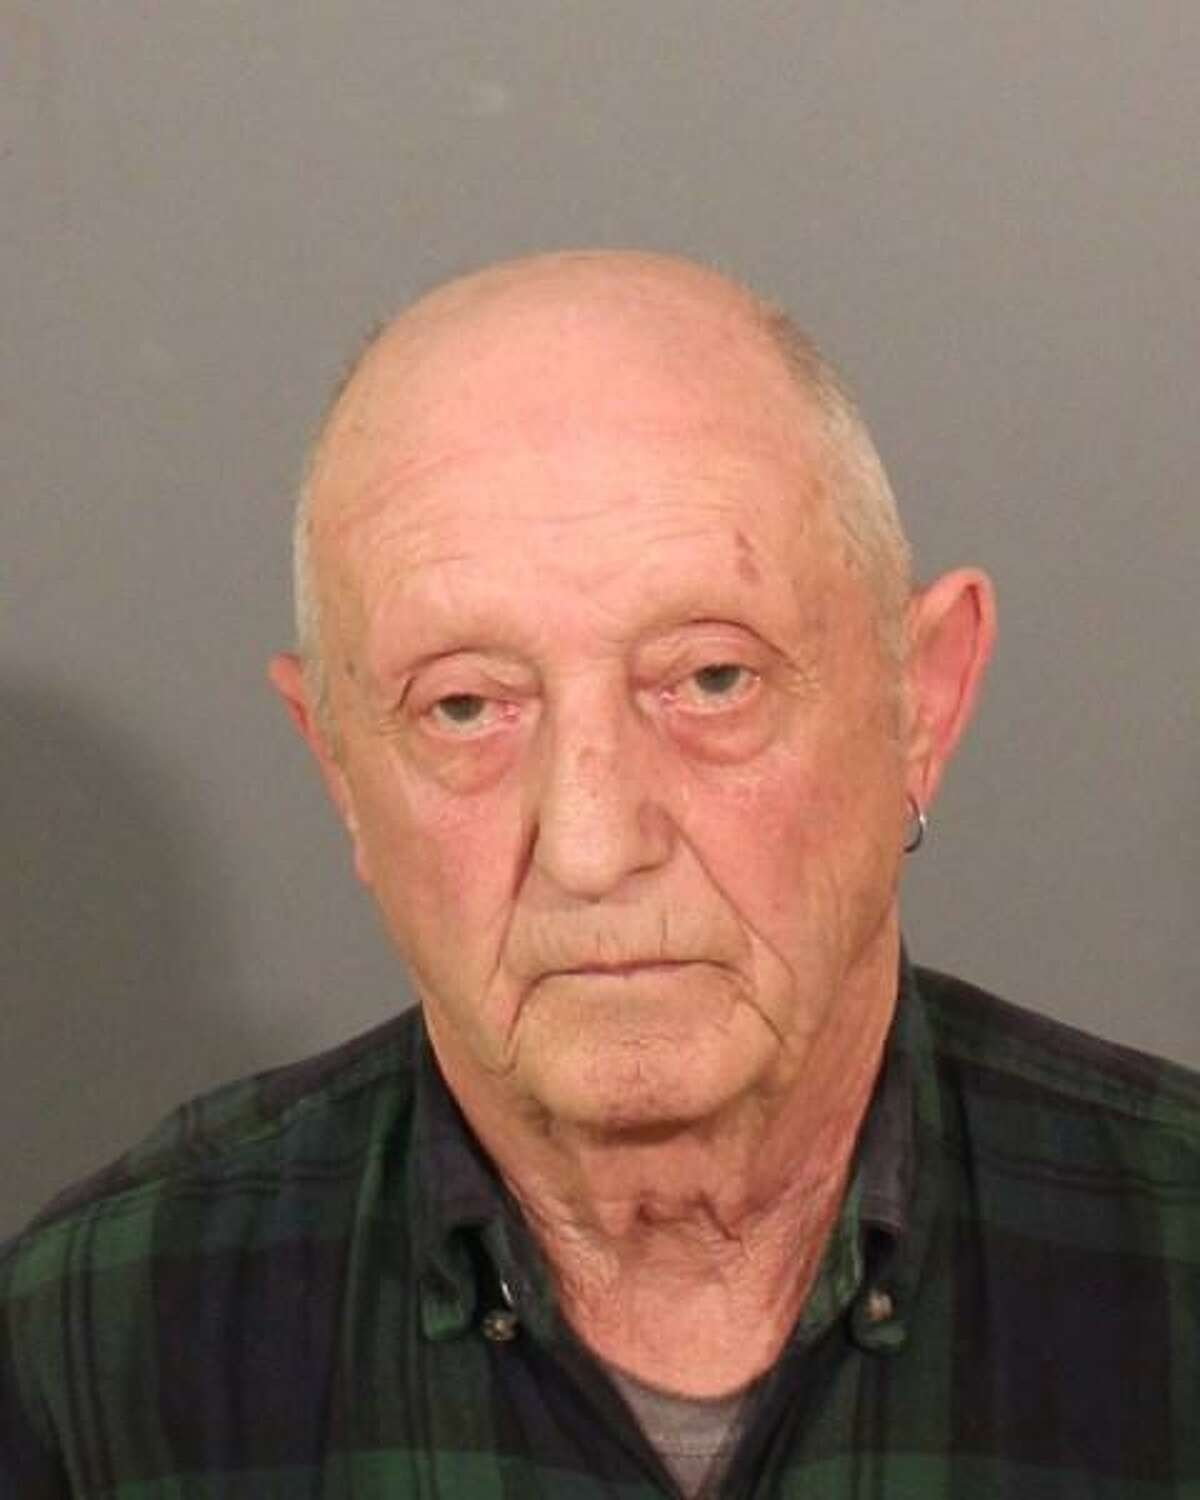 Westport resident William Trefzger was charged with patronizing a trafficked person.